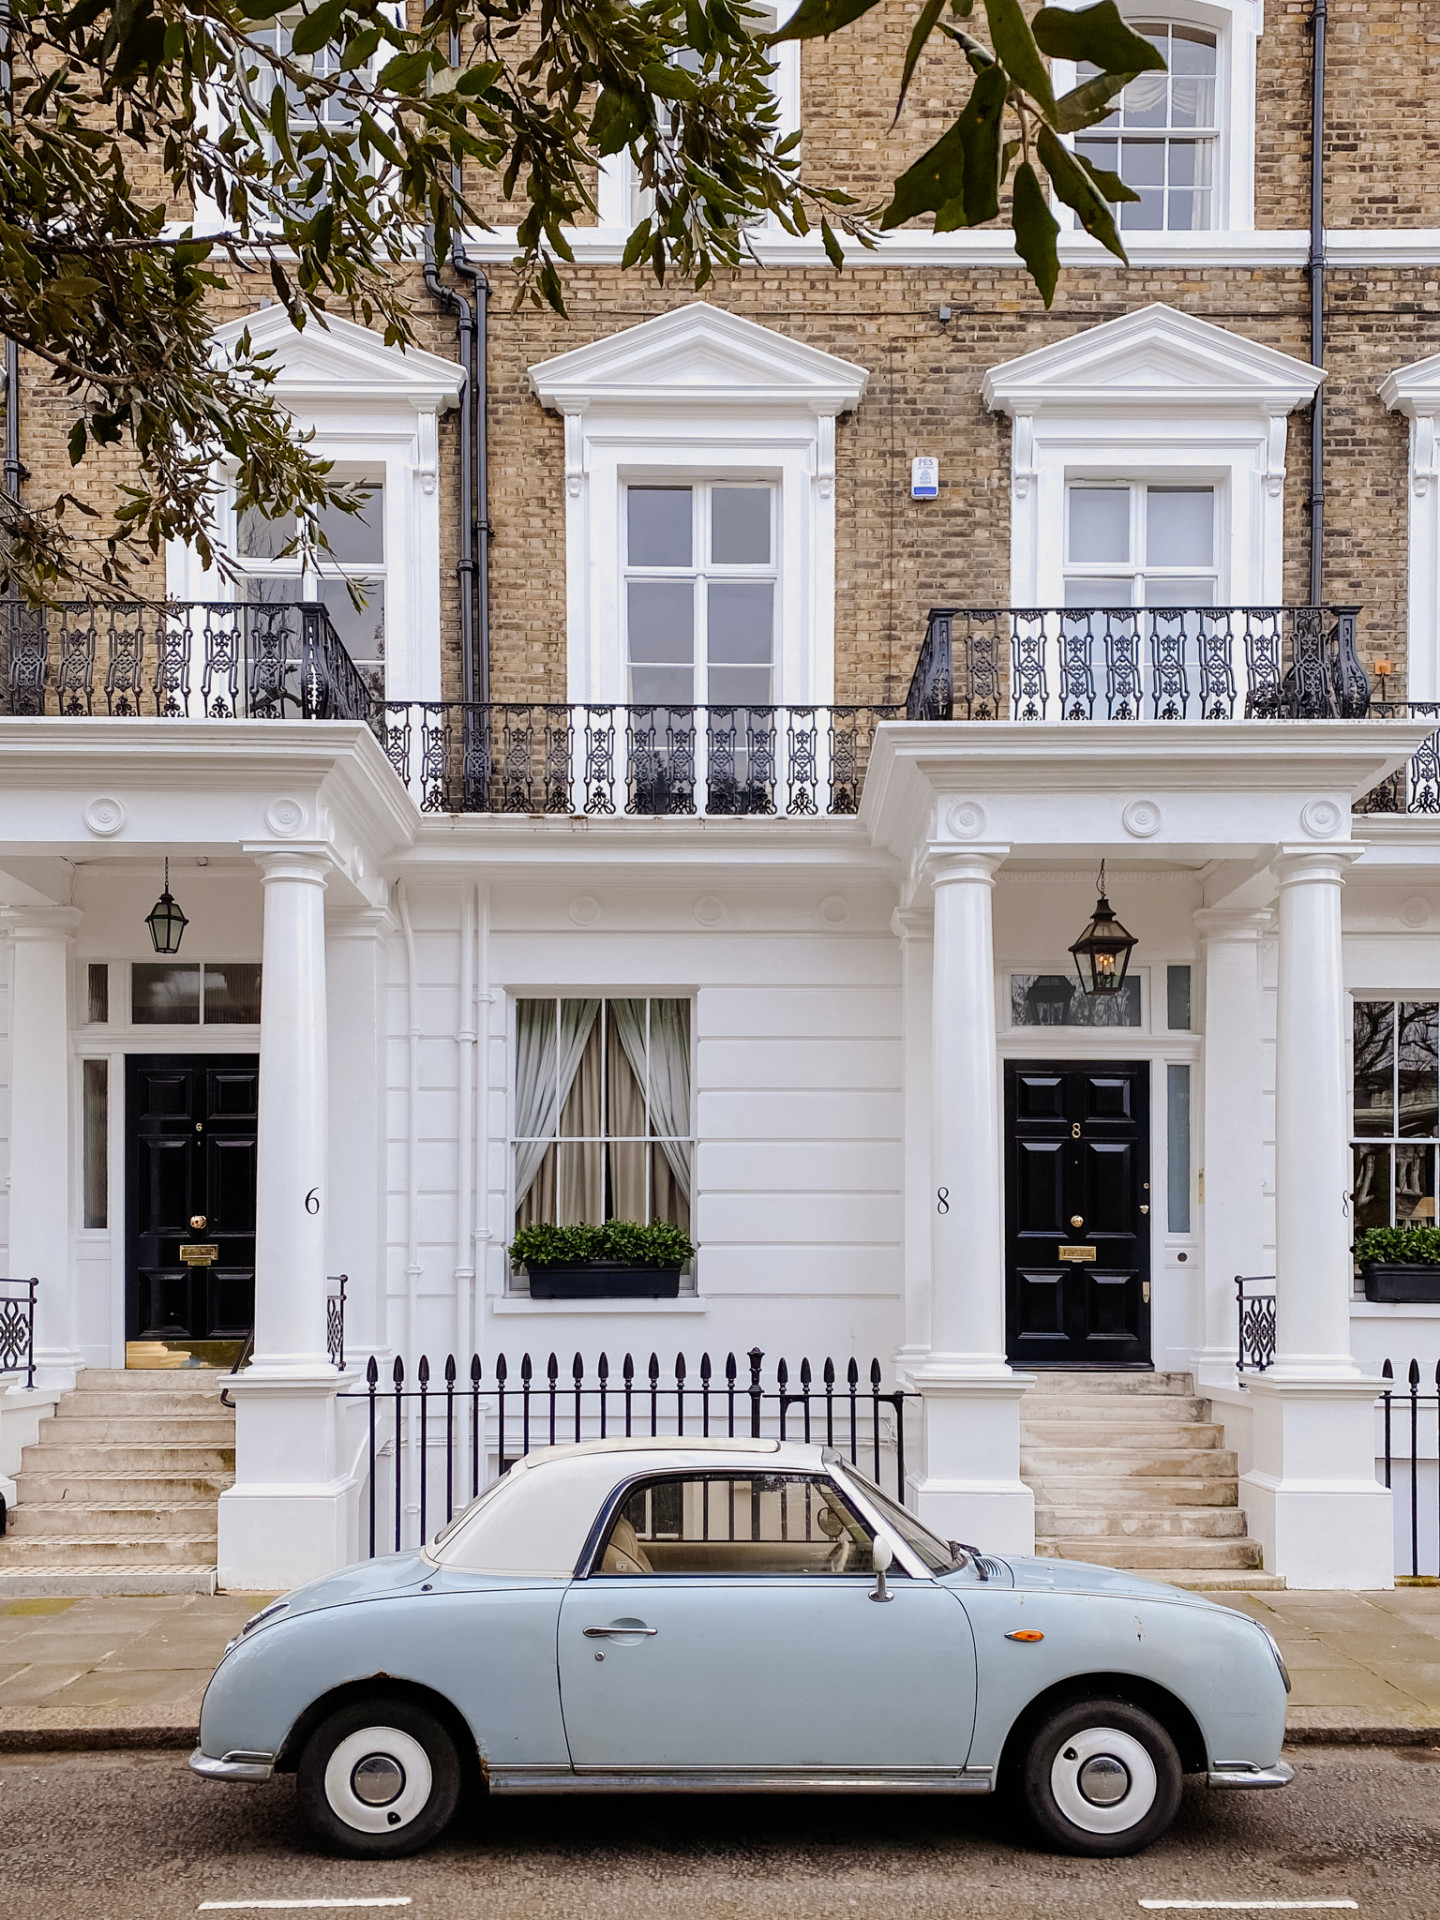 Lifestyle blogger Mollie Moore shares her guide to moving in London